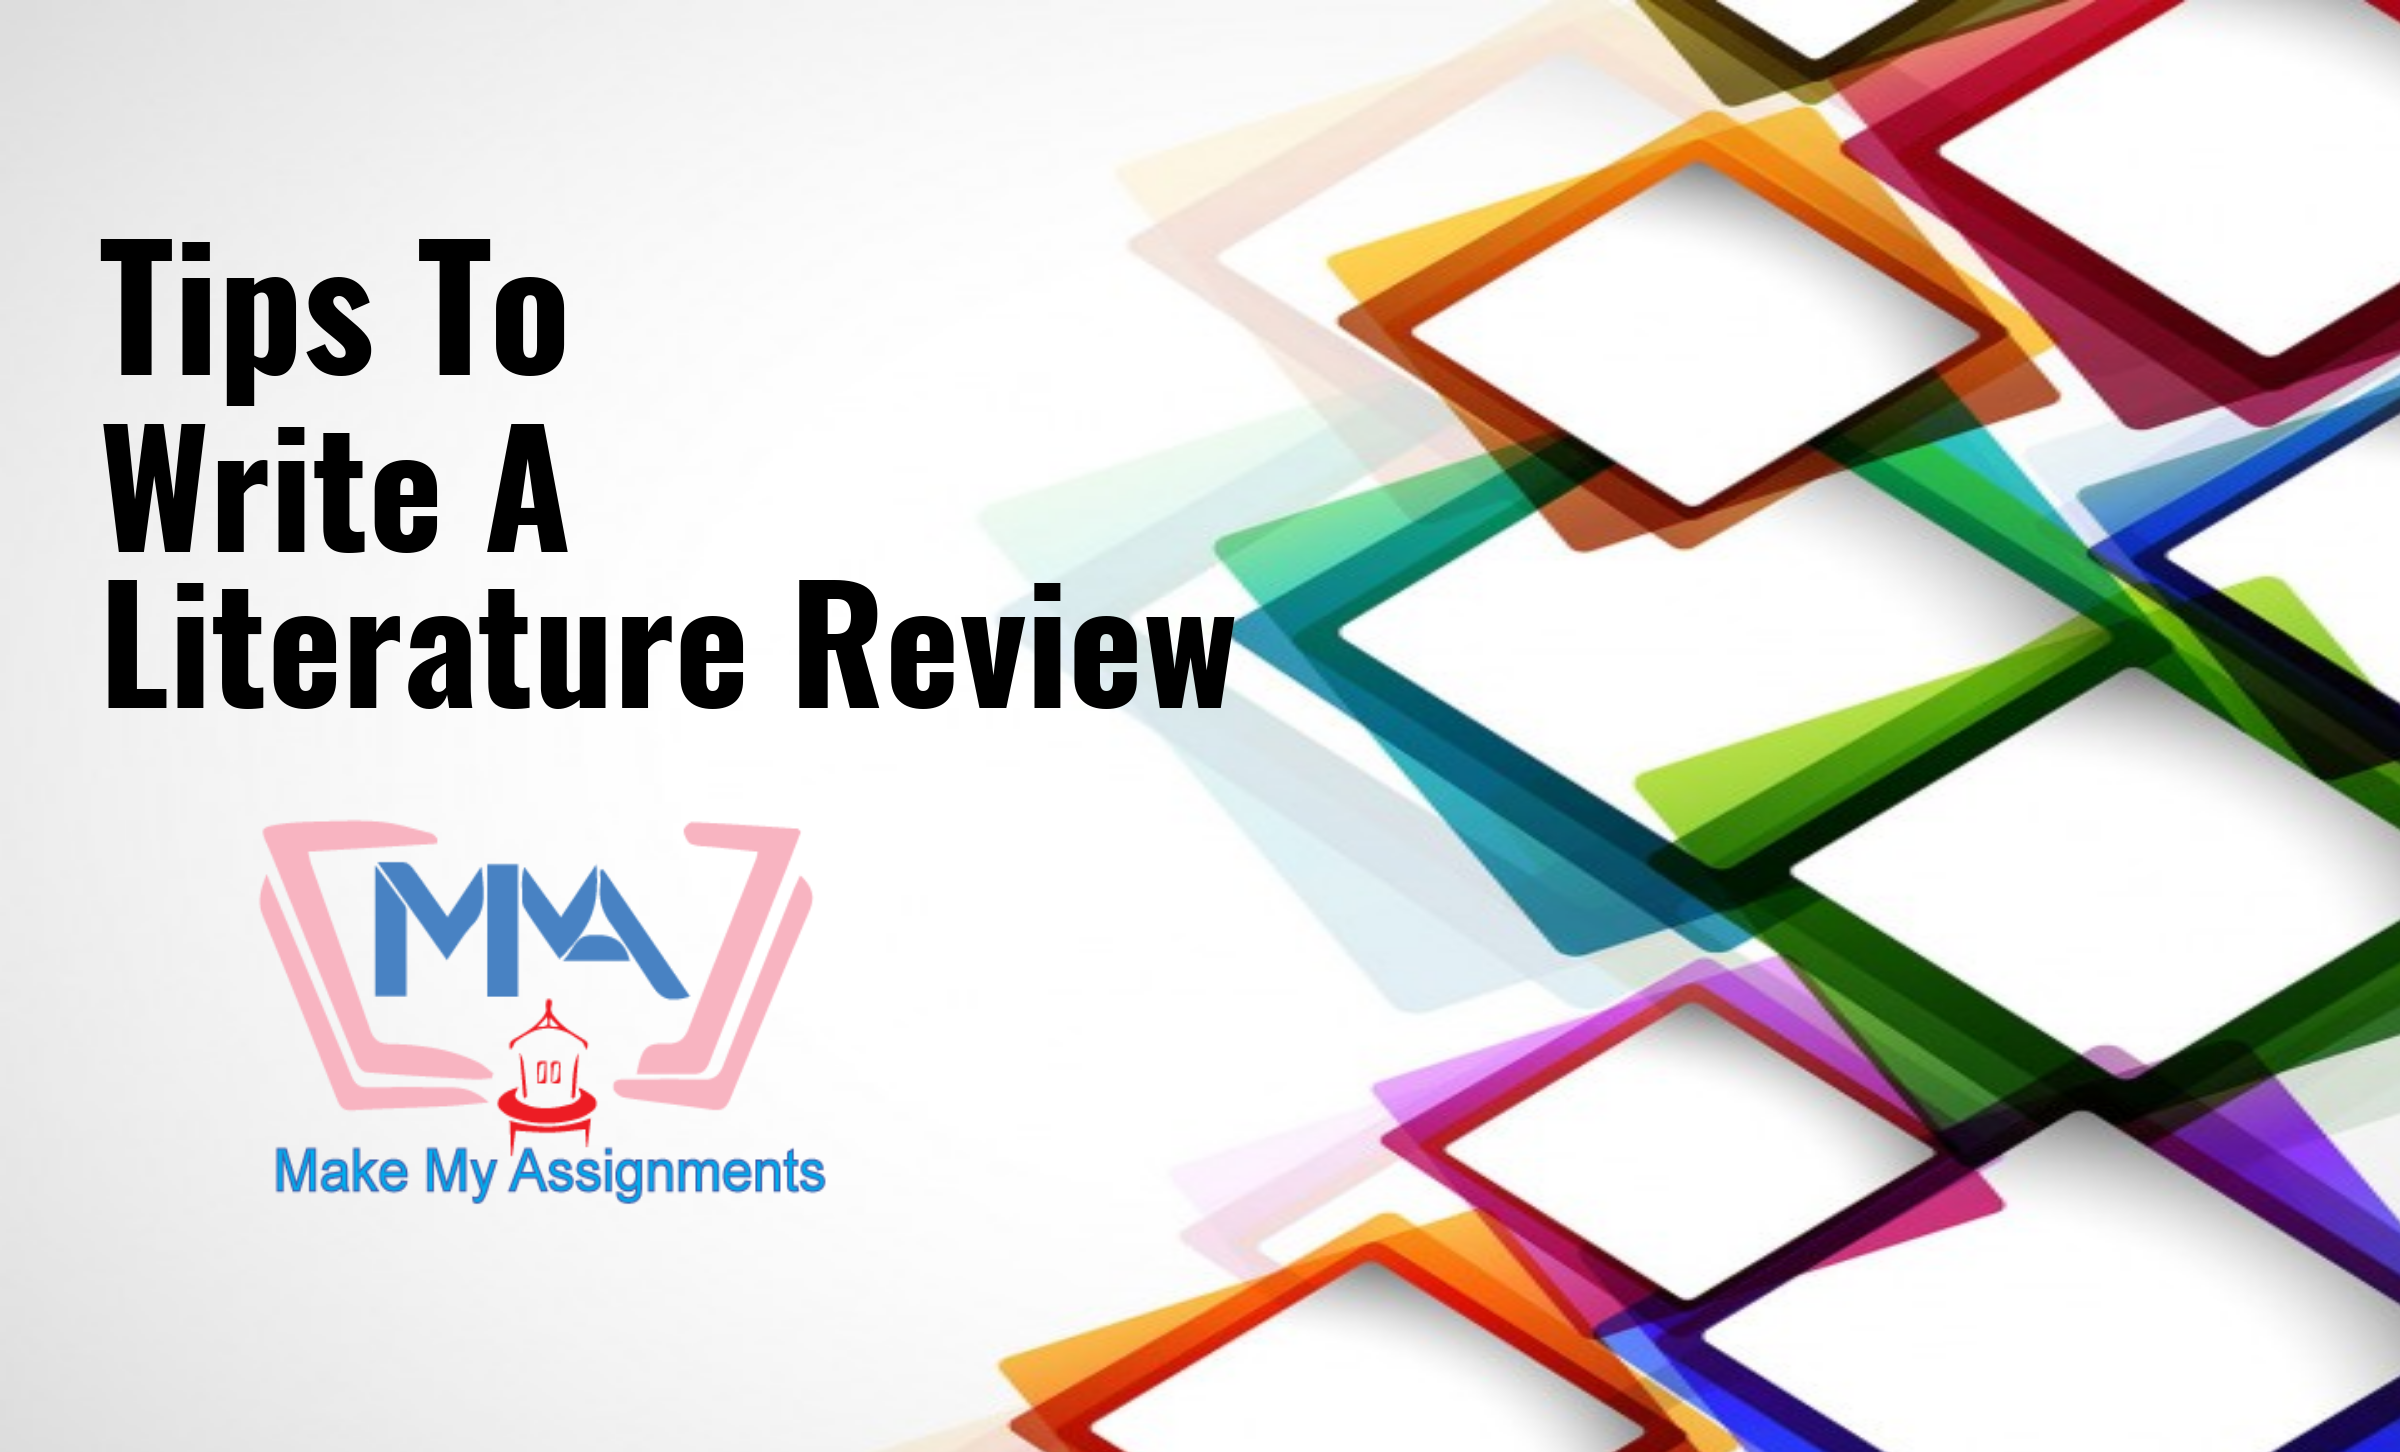 Tricks To Write An Effective Literature Review Assignment